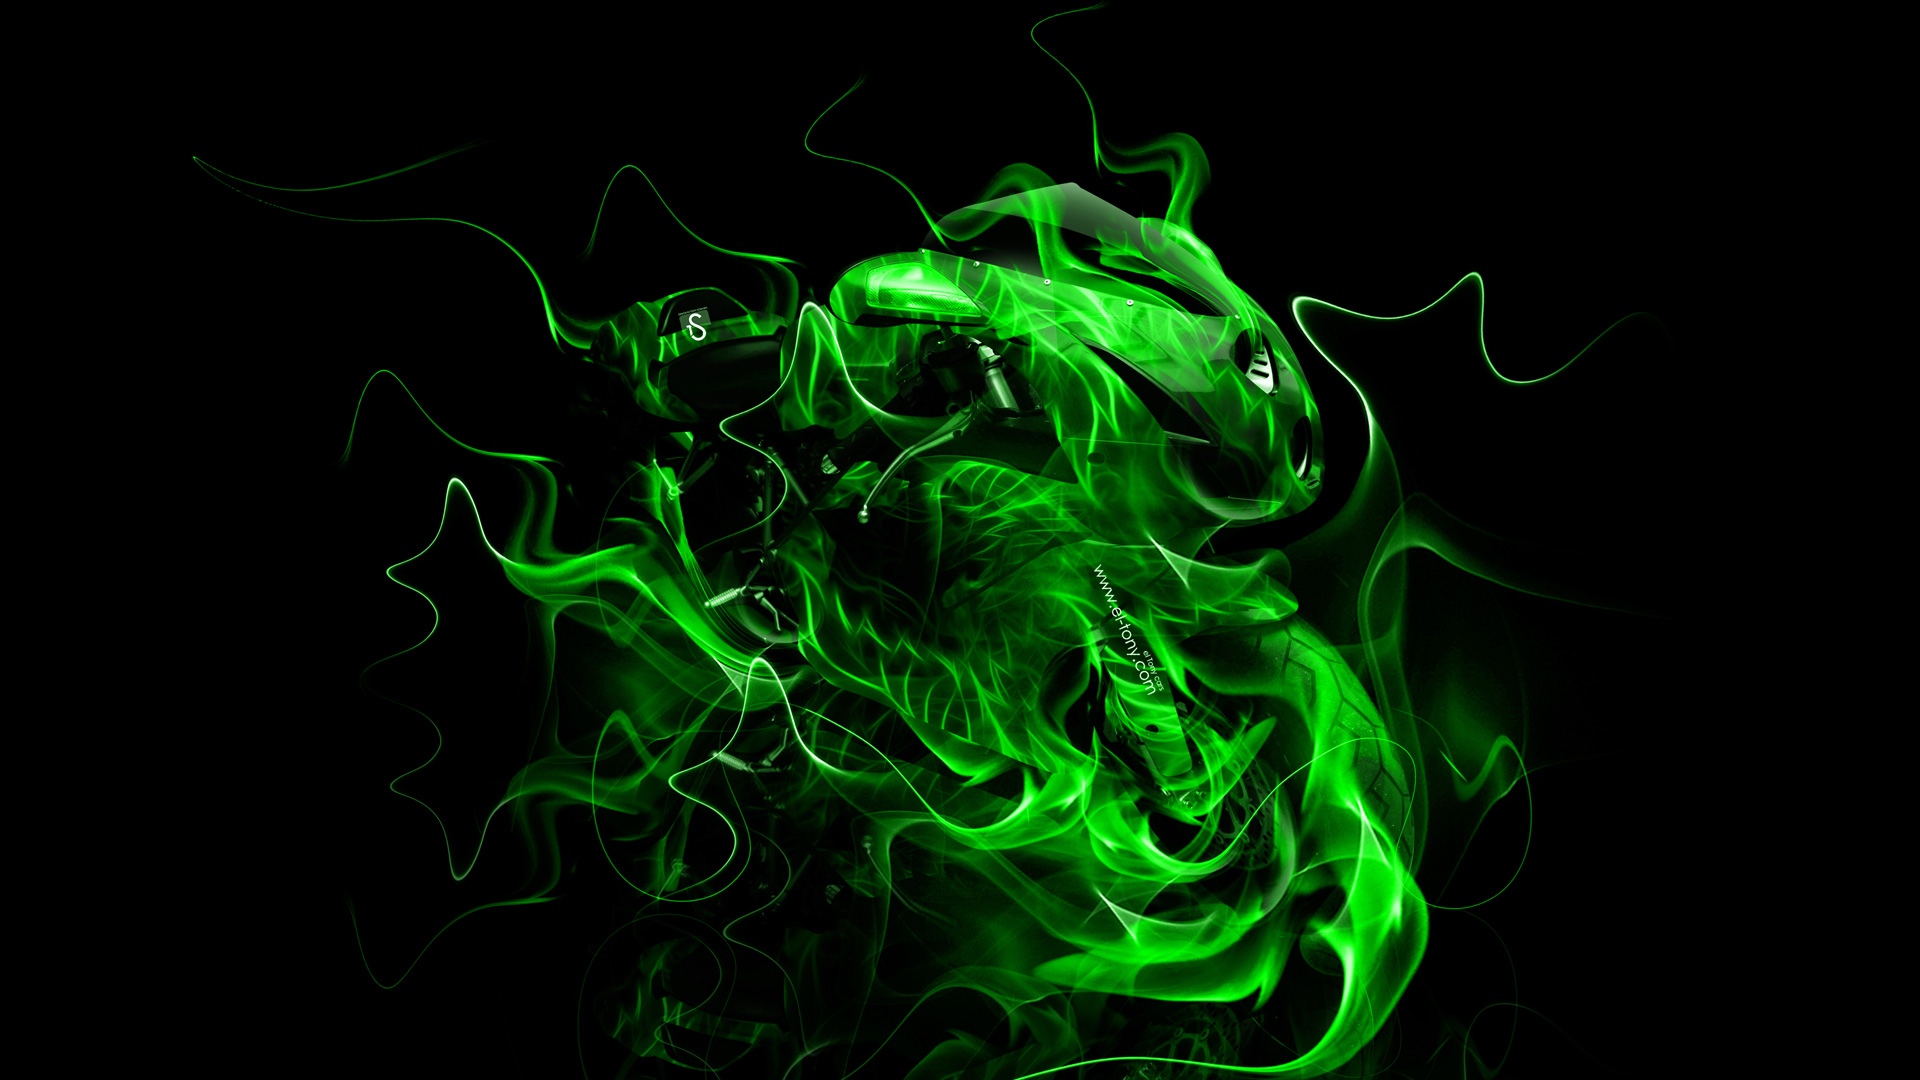 green fire wallpaper - photo #18